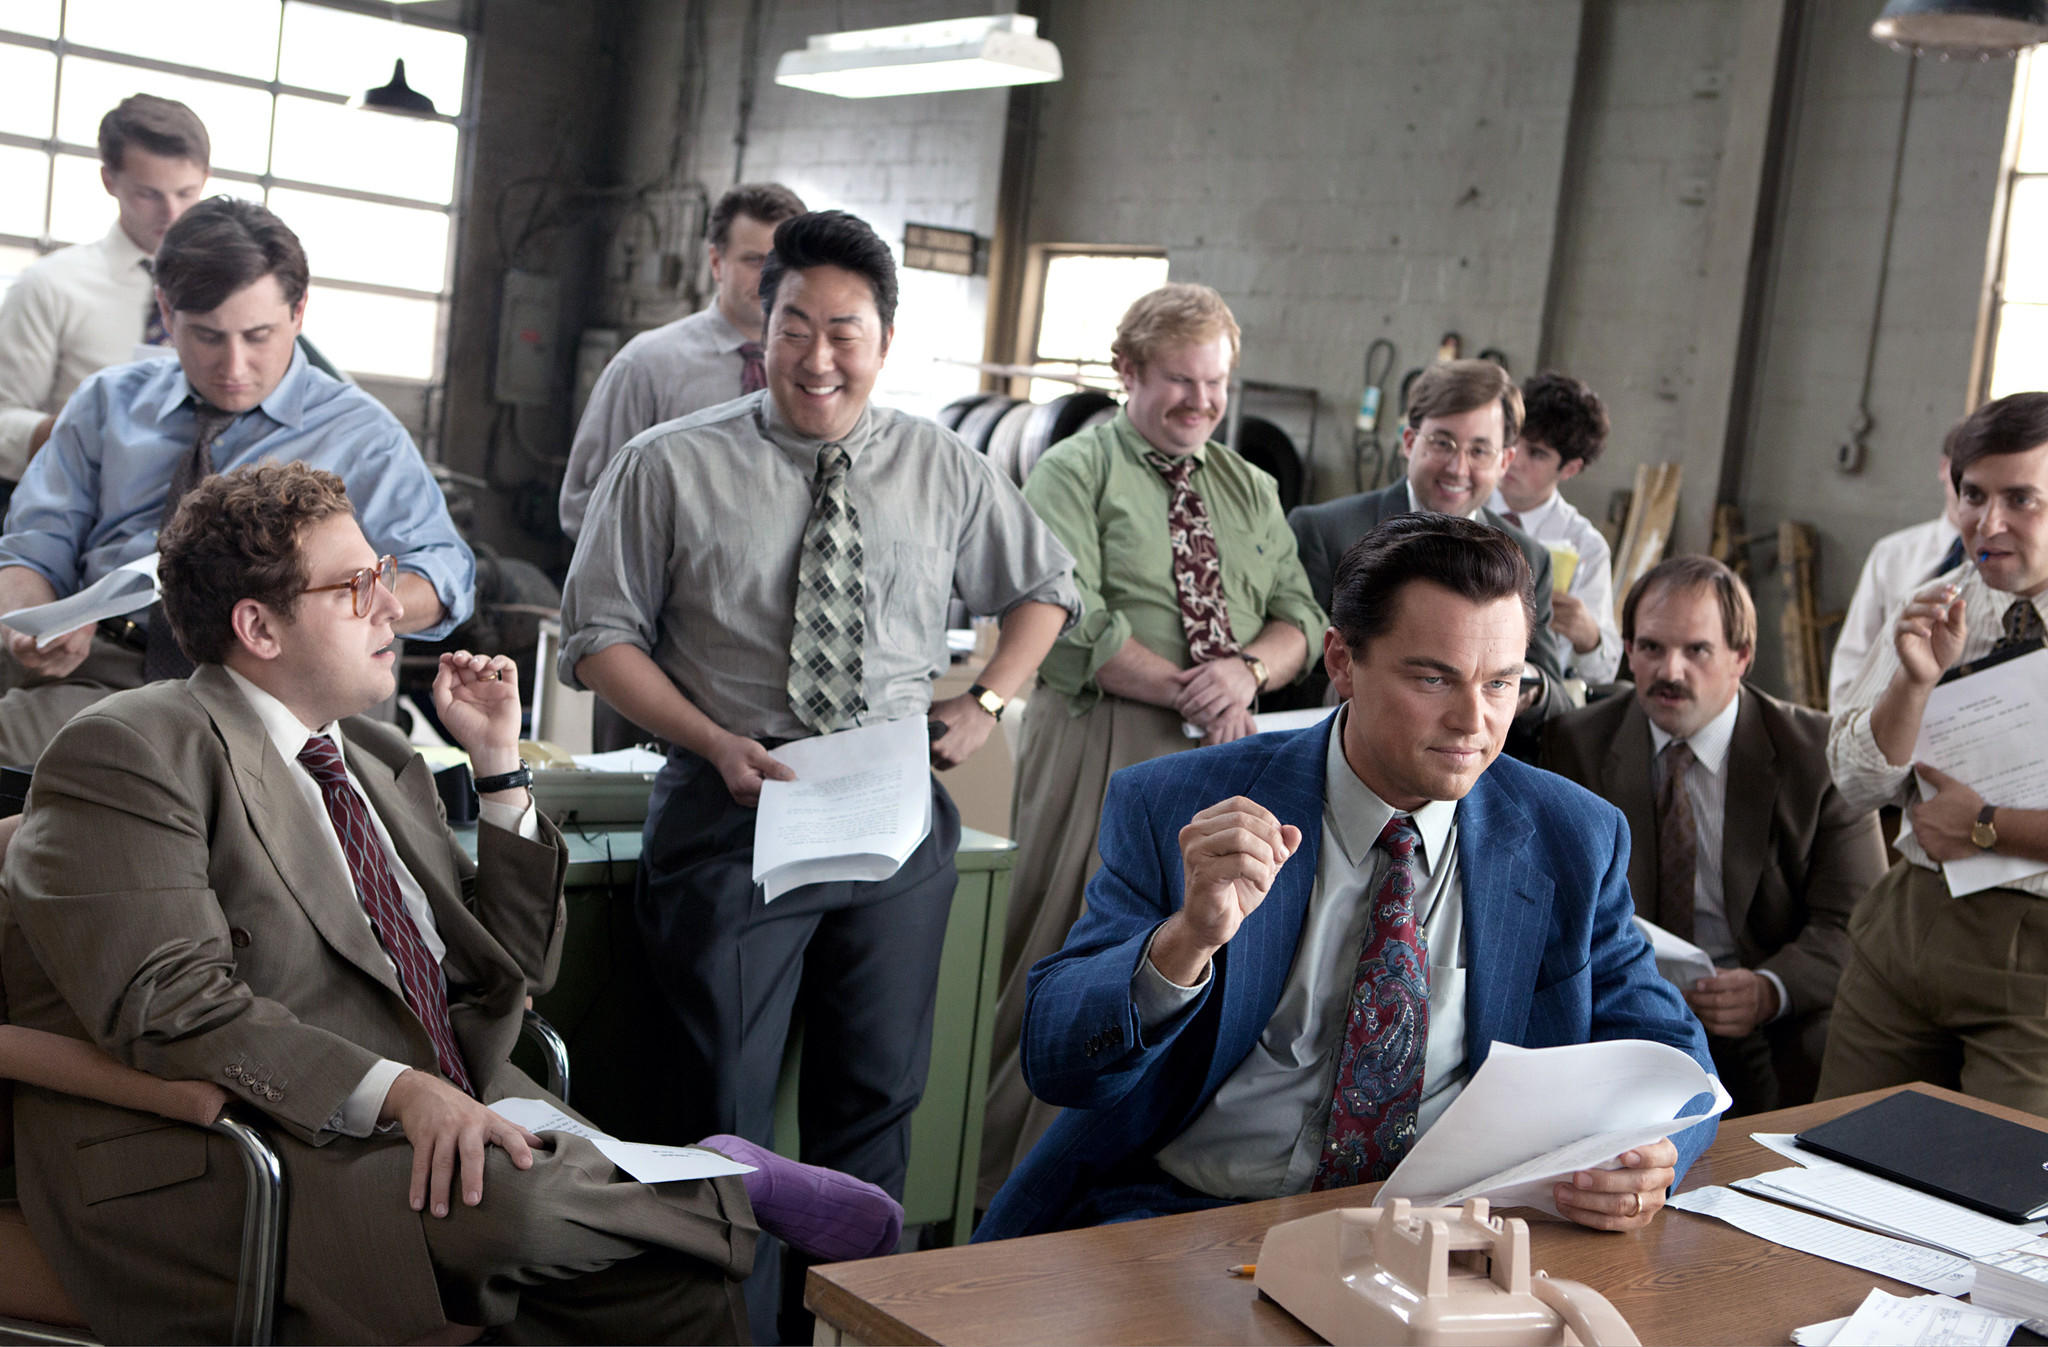 "Foreground left to right: Jonah Hill is Donnie Azoff, Kenneth Choi is Chester Ming, Leonardo DiCaprio is Jordan Belfort, Henry Zebrowski is Alden Kupferberg (""Sea Otter""), P.J. Bryne is Nicky Koskoff (""Rugrat""), and Ethan Suplee is Toby Welch in The Wolf of Wall Street, from Paramount Pictures and Red Granite Pictures."